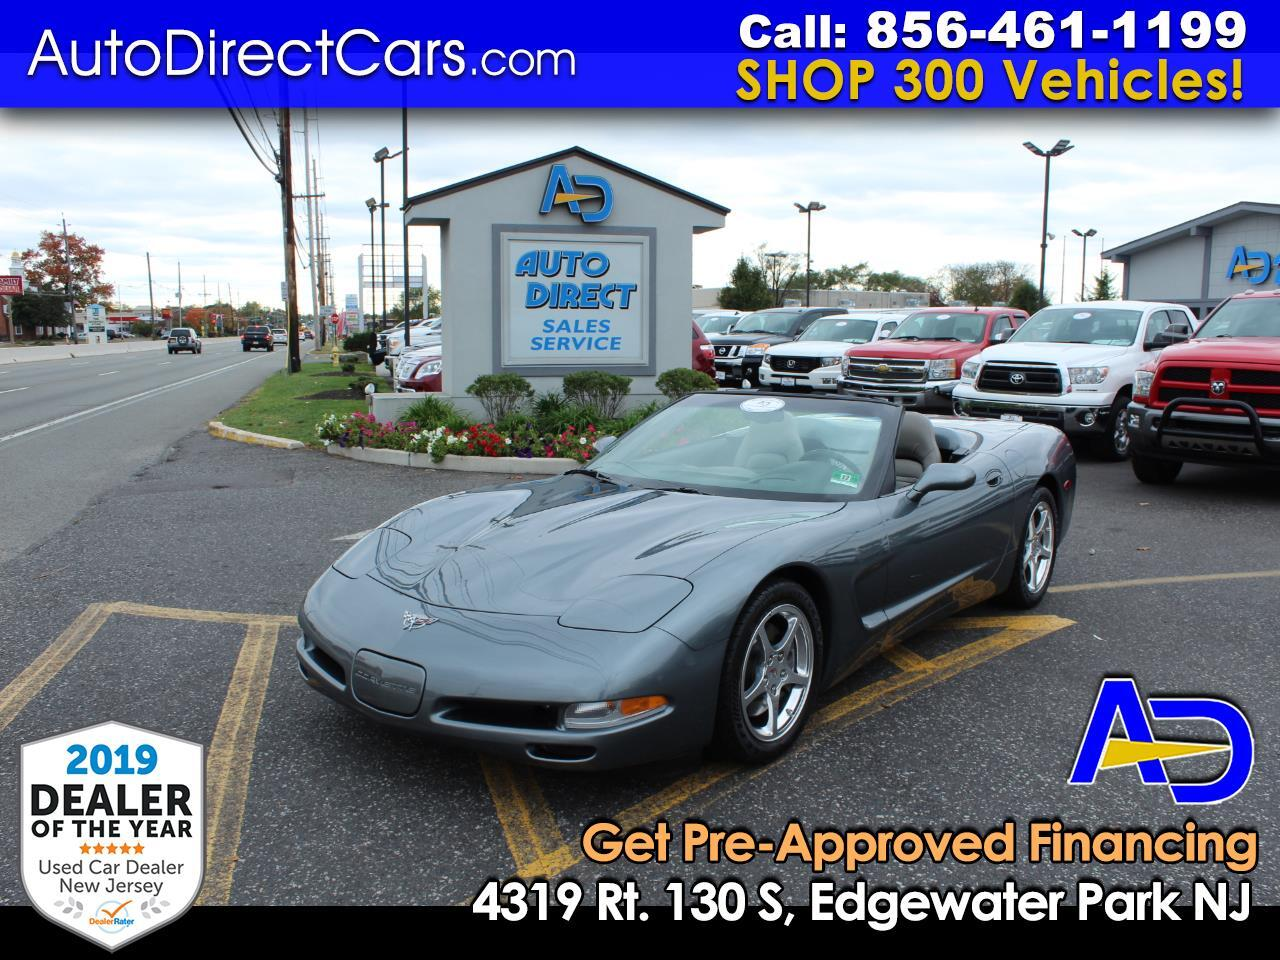 2003 Chevrolet Corvette Convertible 60th Anniversary